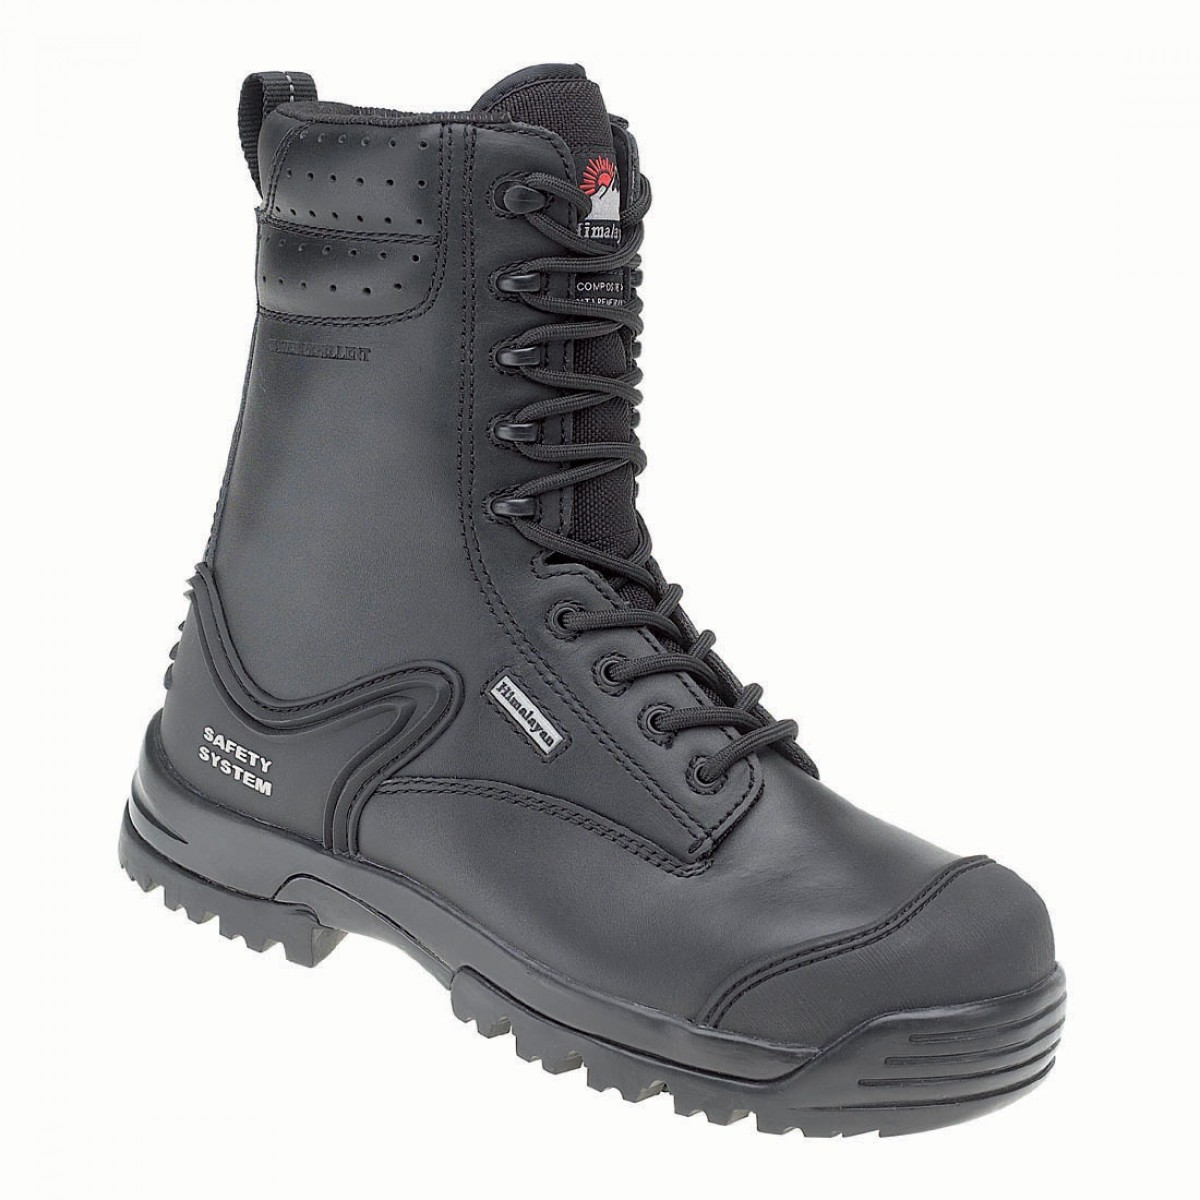 02a195c66ec Himalayan 5204 Gravity Black Leather Side Zip Metal Free S3 Safety Boots